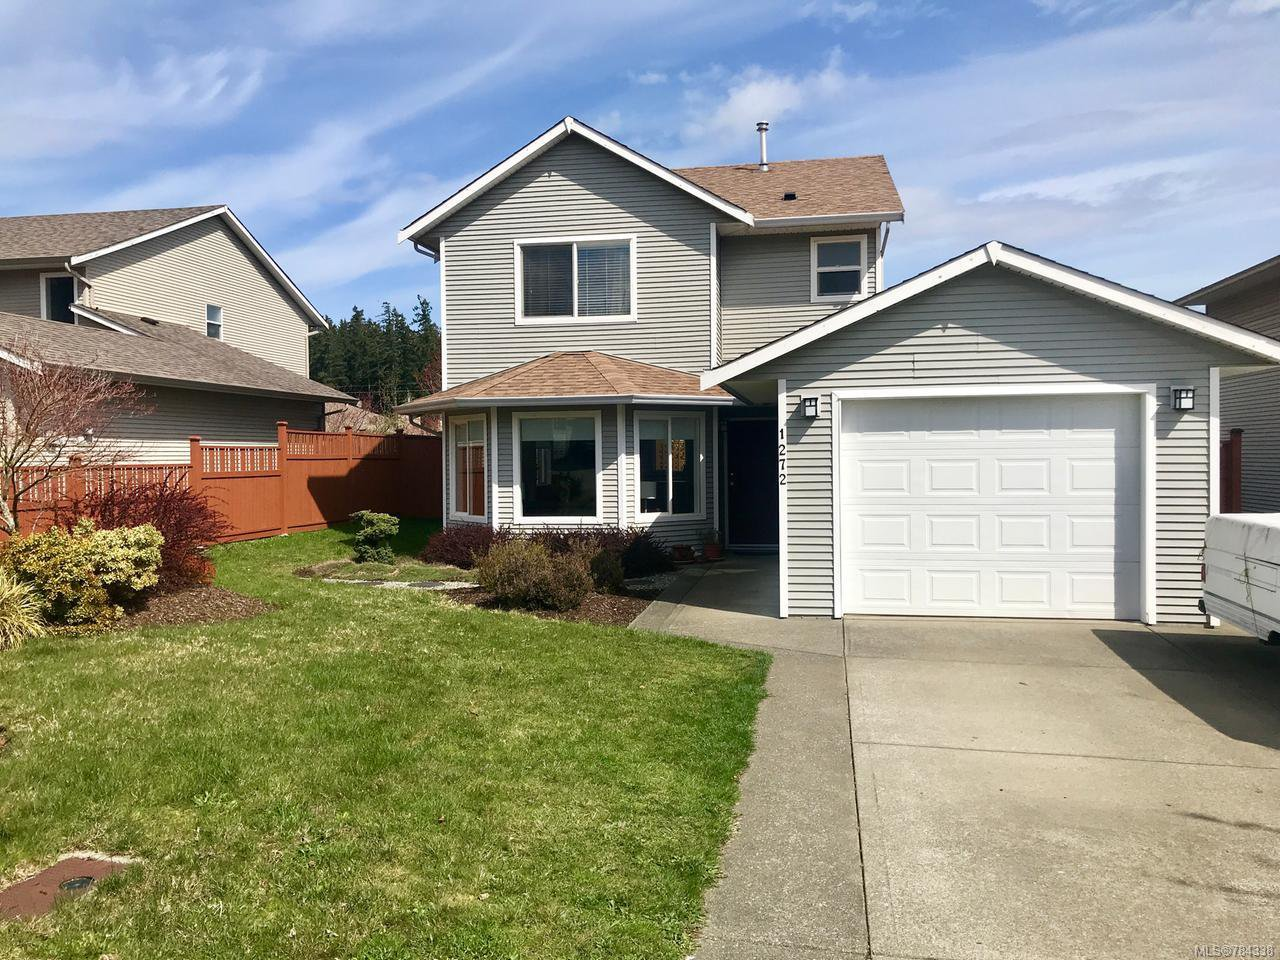 Main Photo: 1272 CROWN PLACE in COMOX: CV Comox (Town of) House for sale (Comox Valley)  : MLS®# 784338